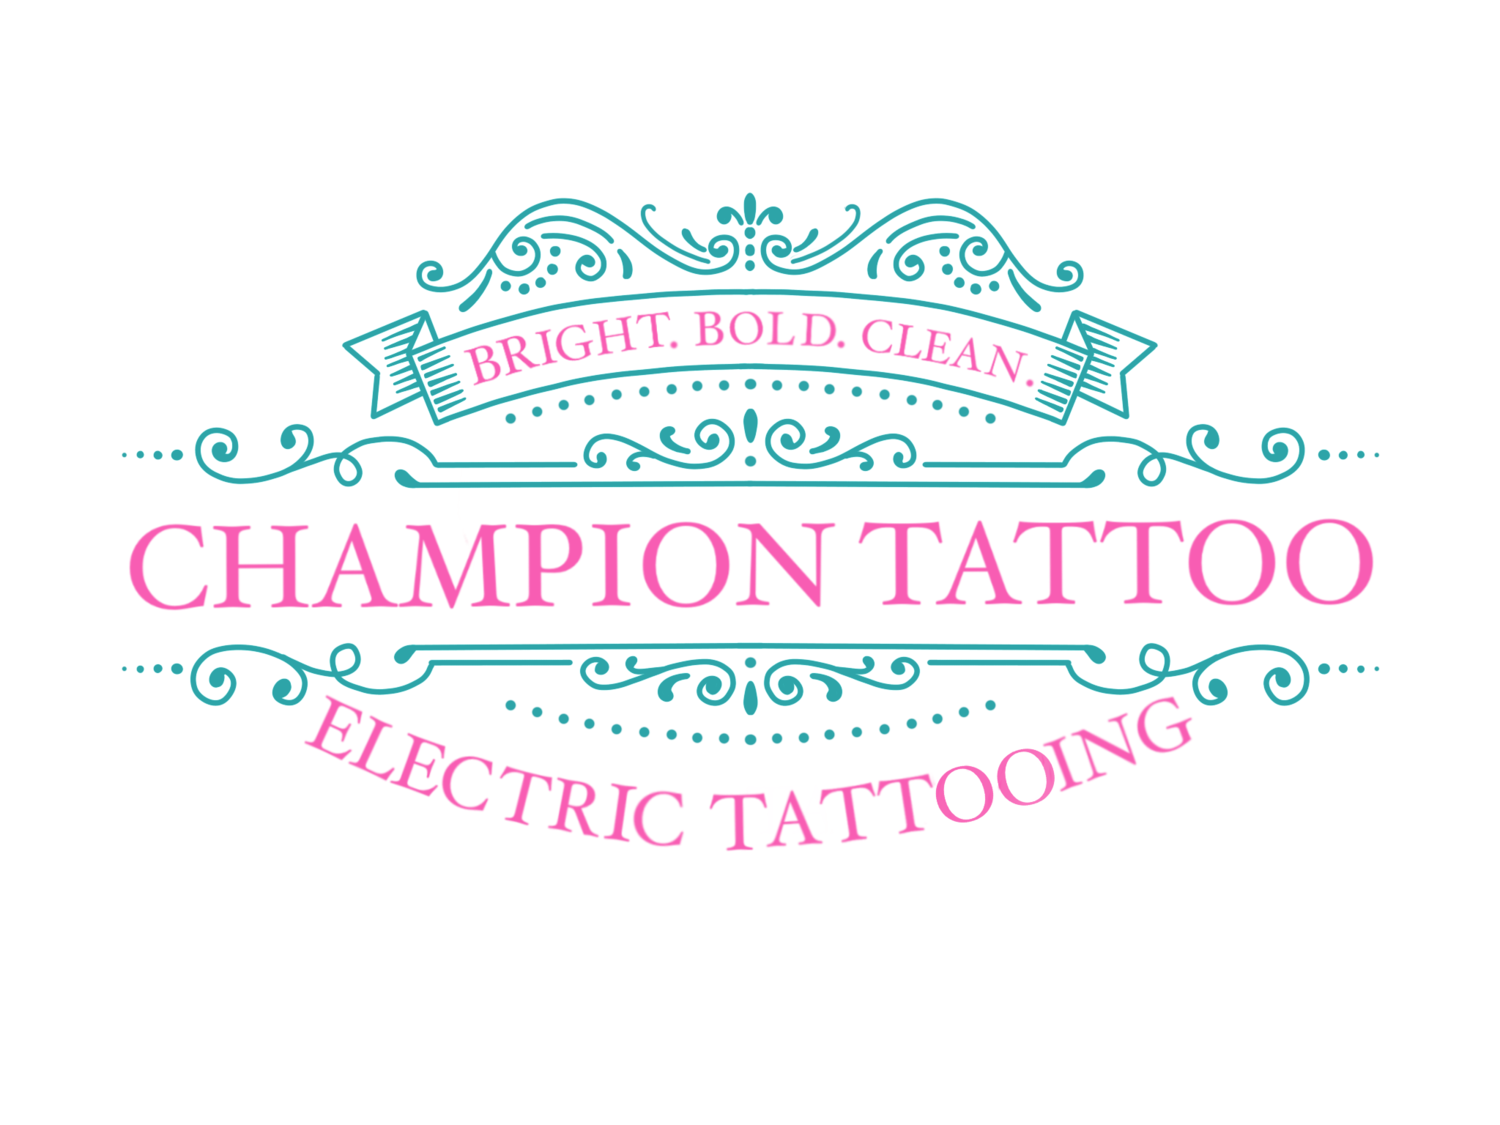 Champion Tattoo Inc